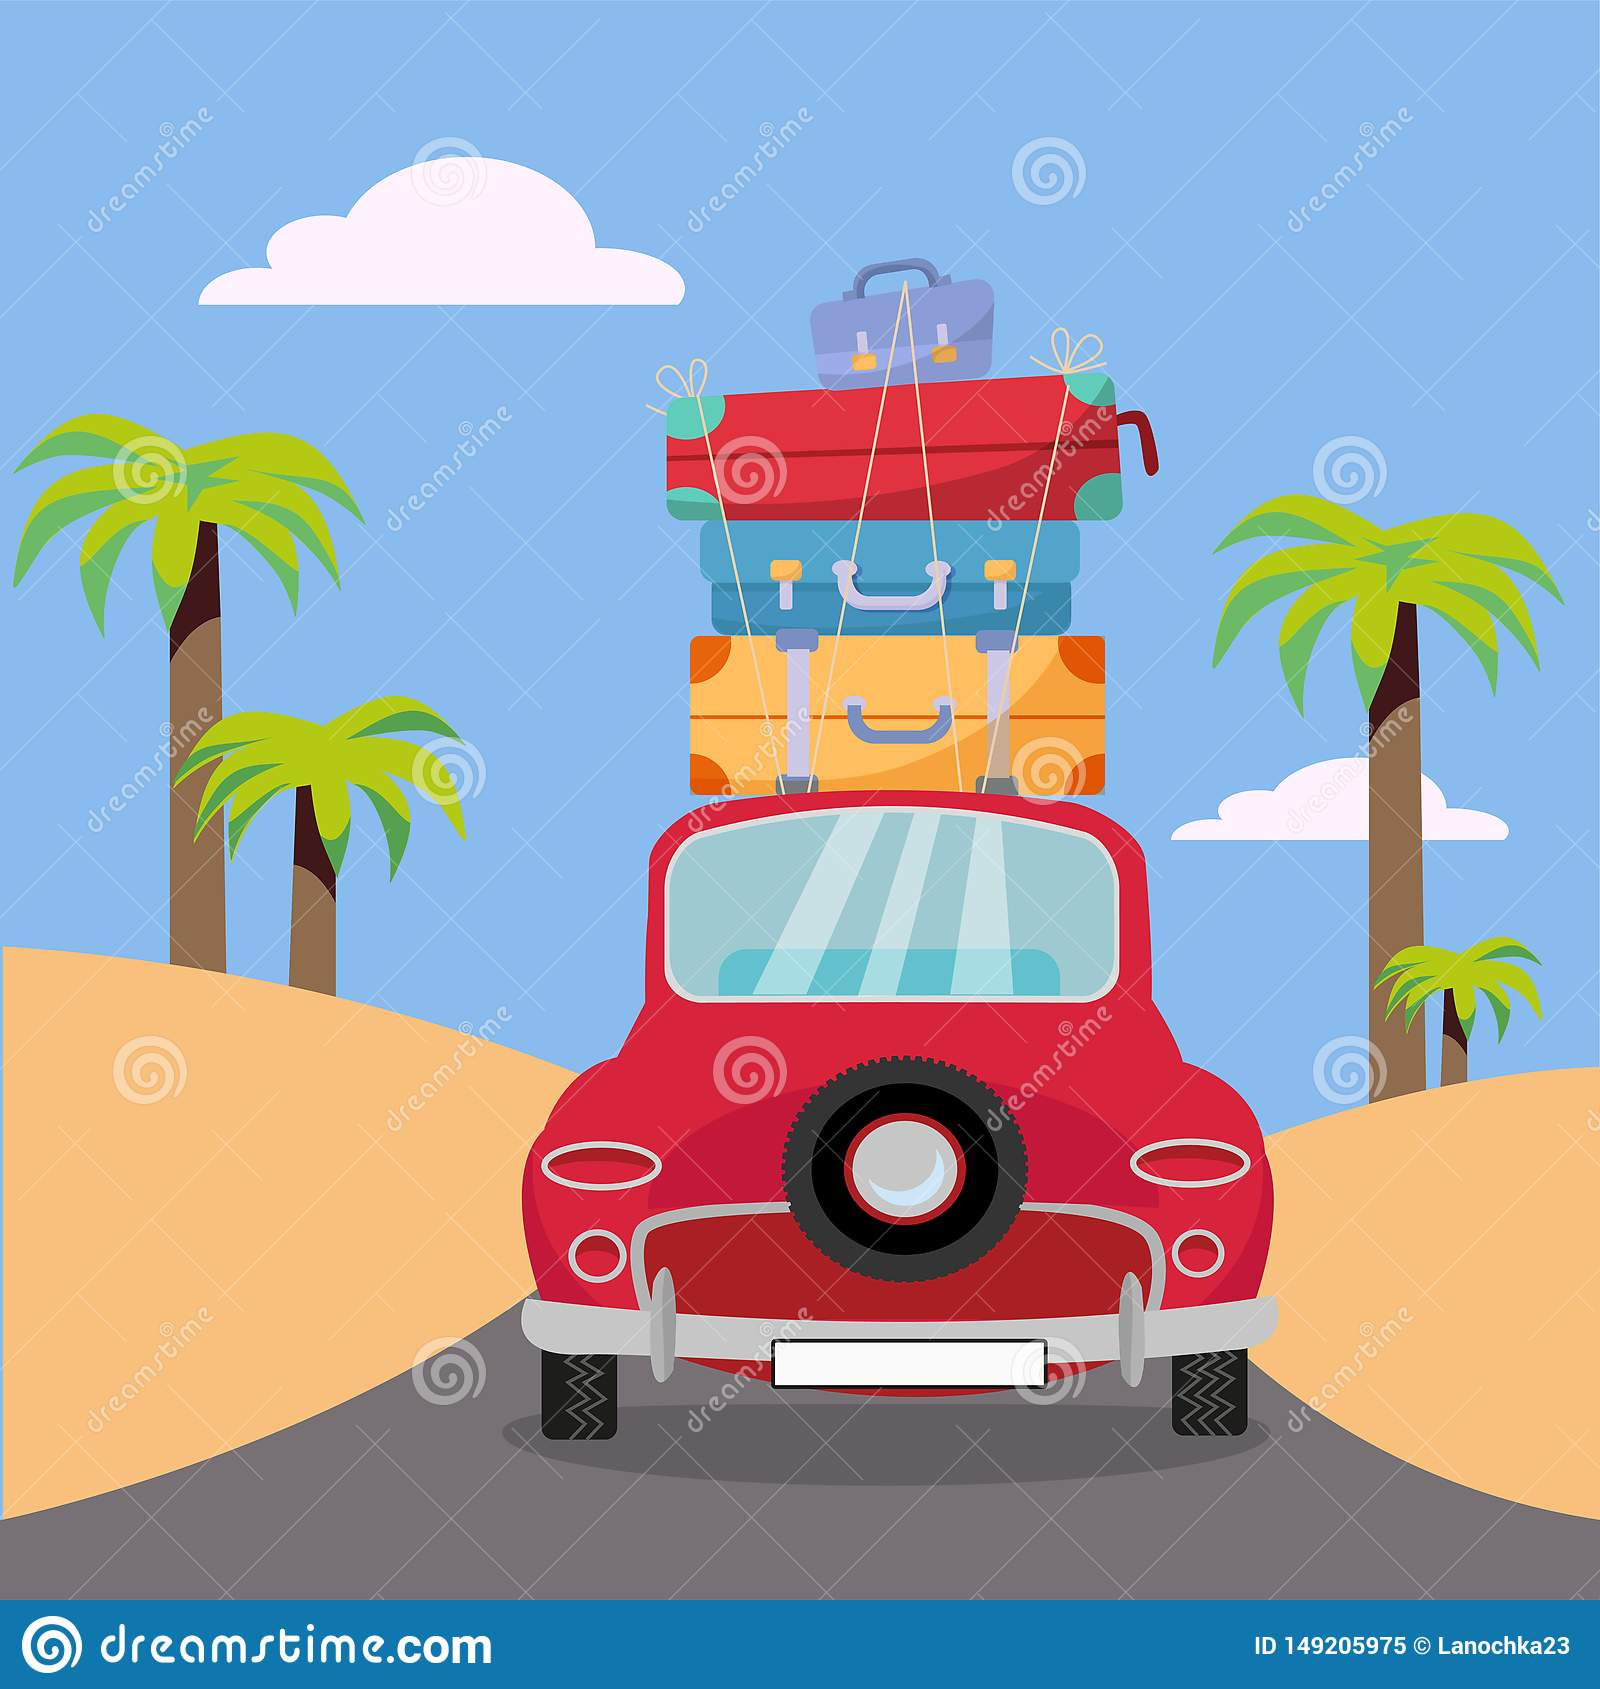 Traveling by red car with stack of luggage bags on roof near beach with palms. Summer tourism, travel, trip. Flat cartoon vector